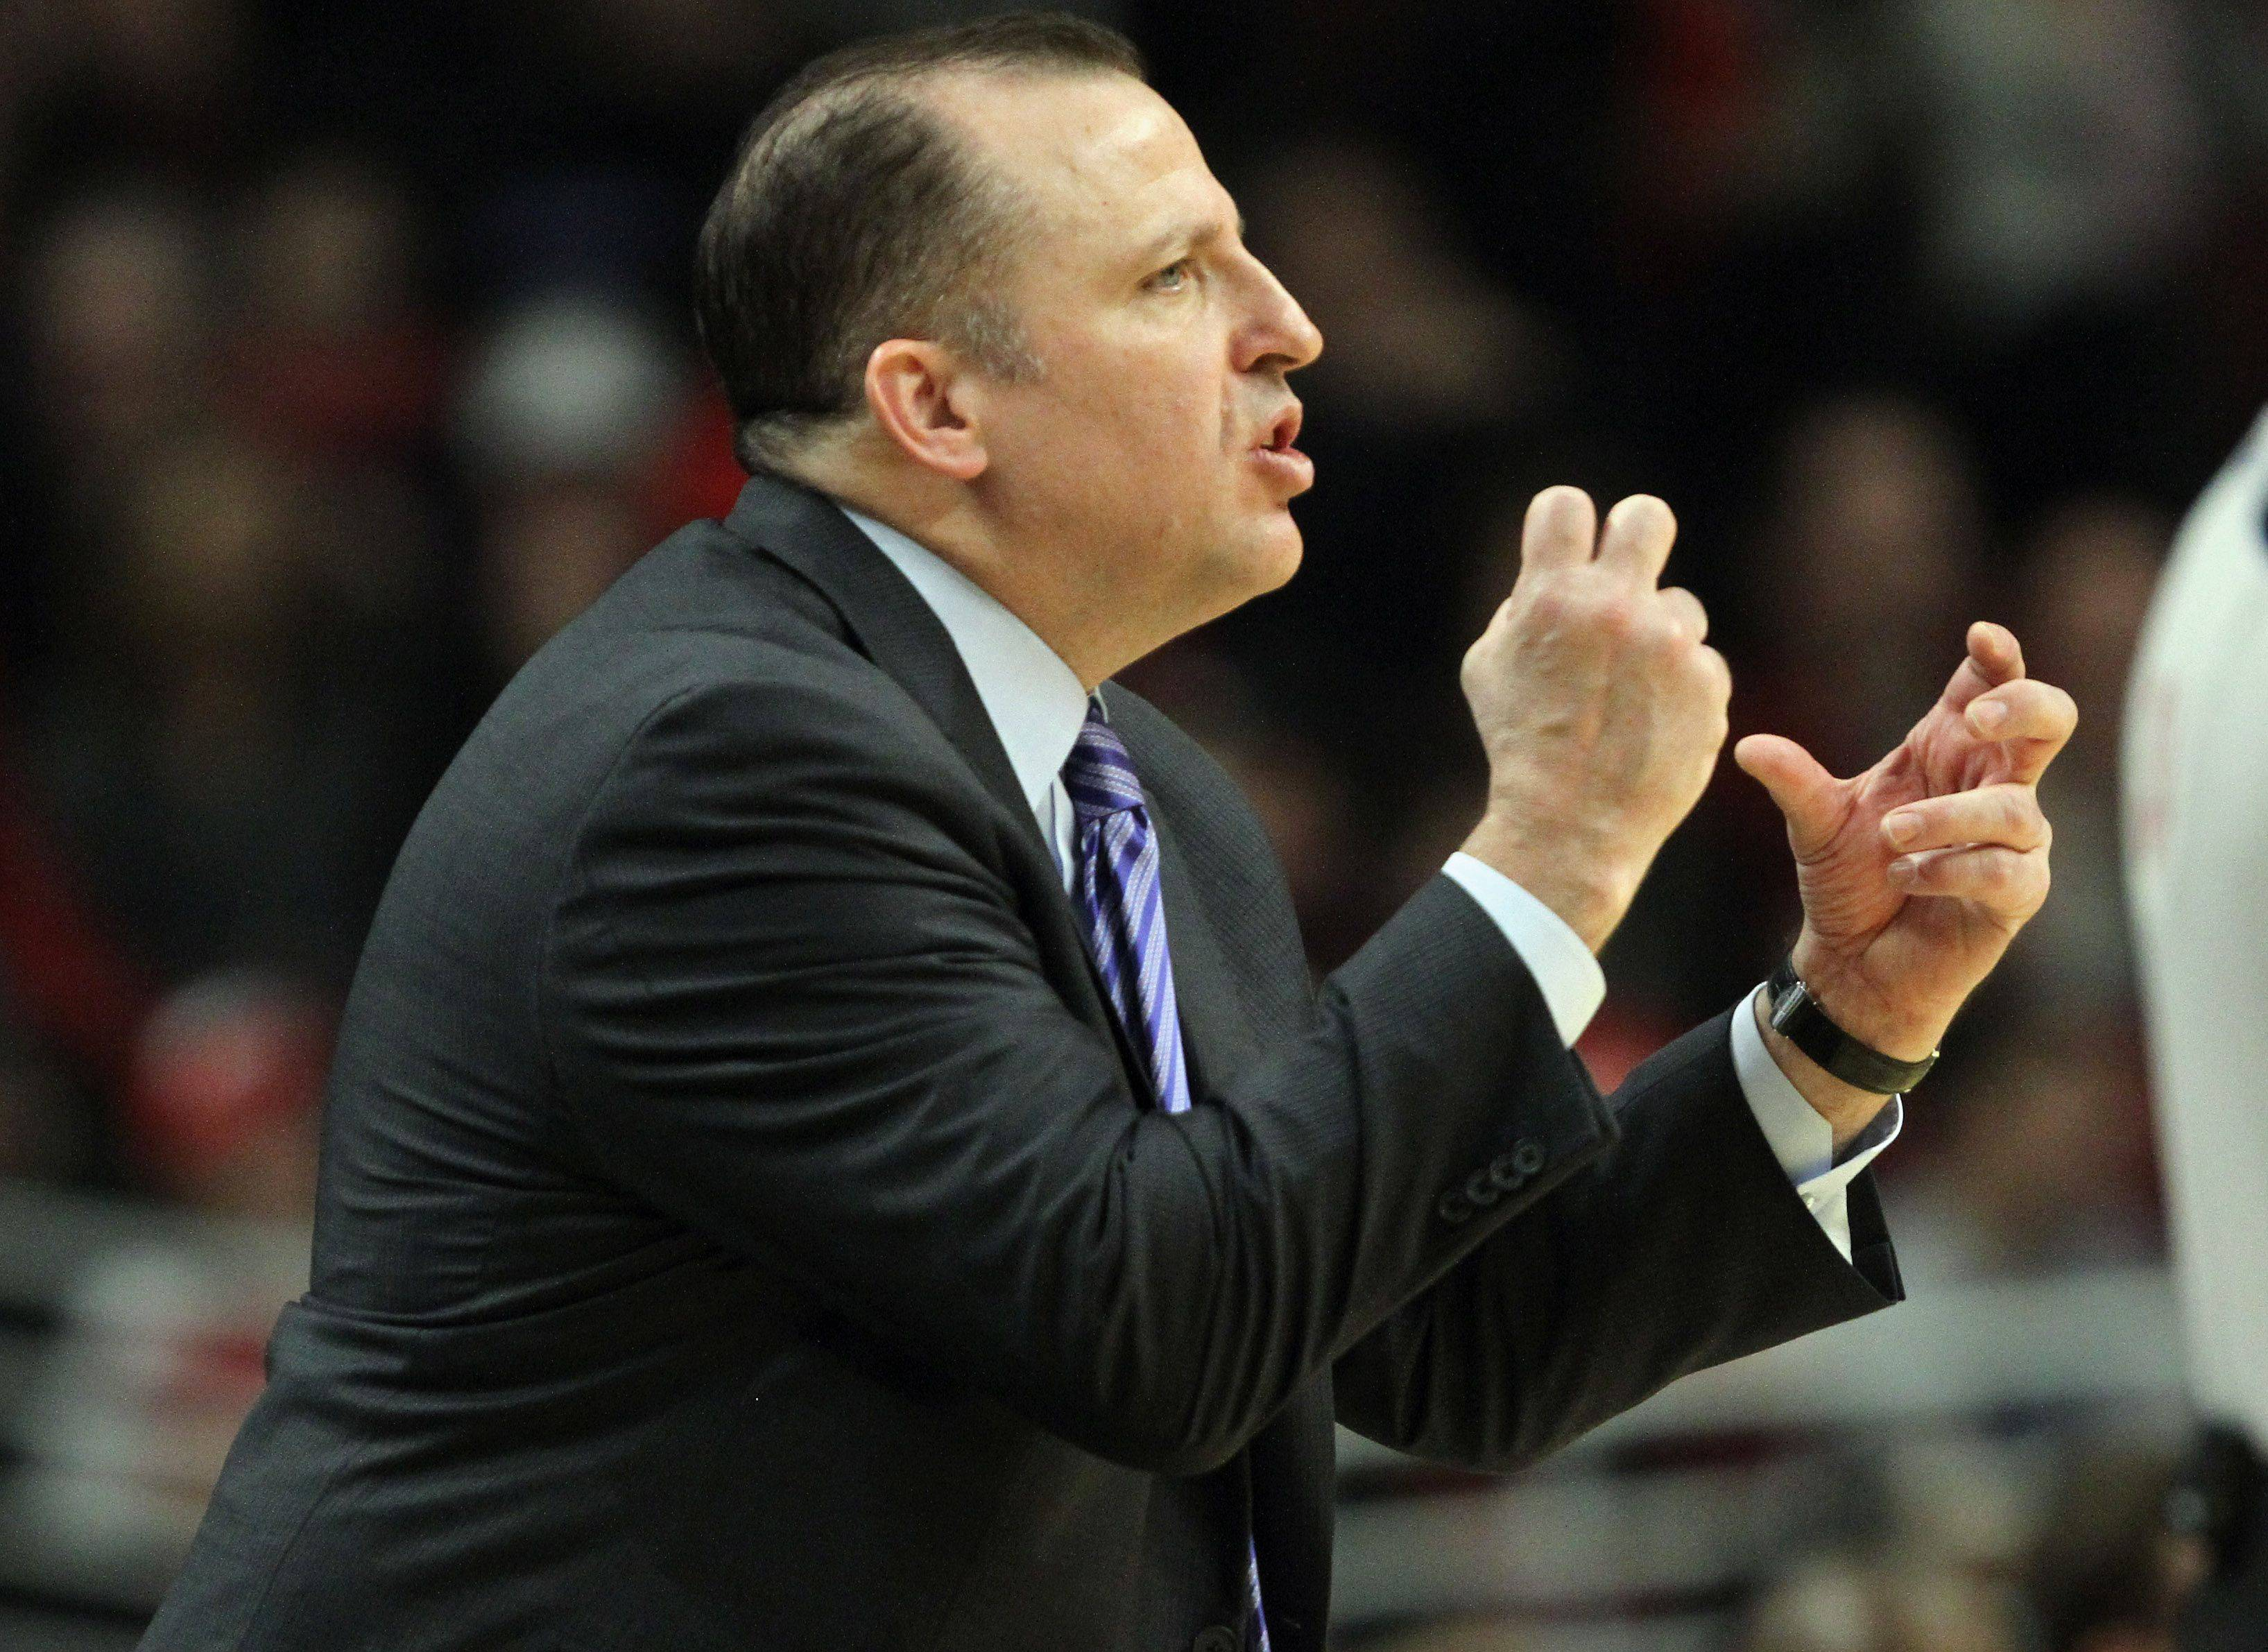 Bulls' head coach Tom Thibodeau shouts out instructions during a game against the Milwaukee Bucks.